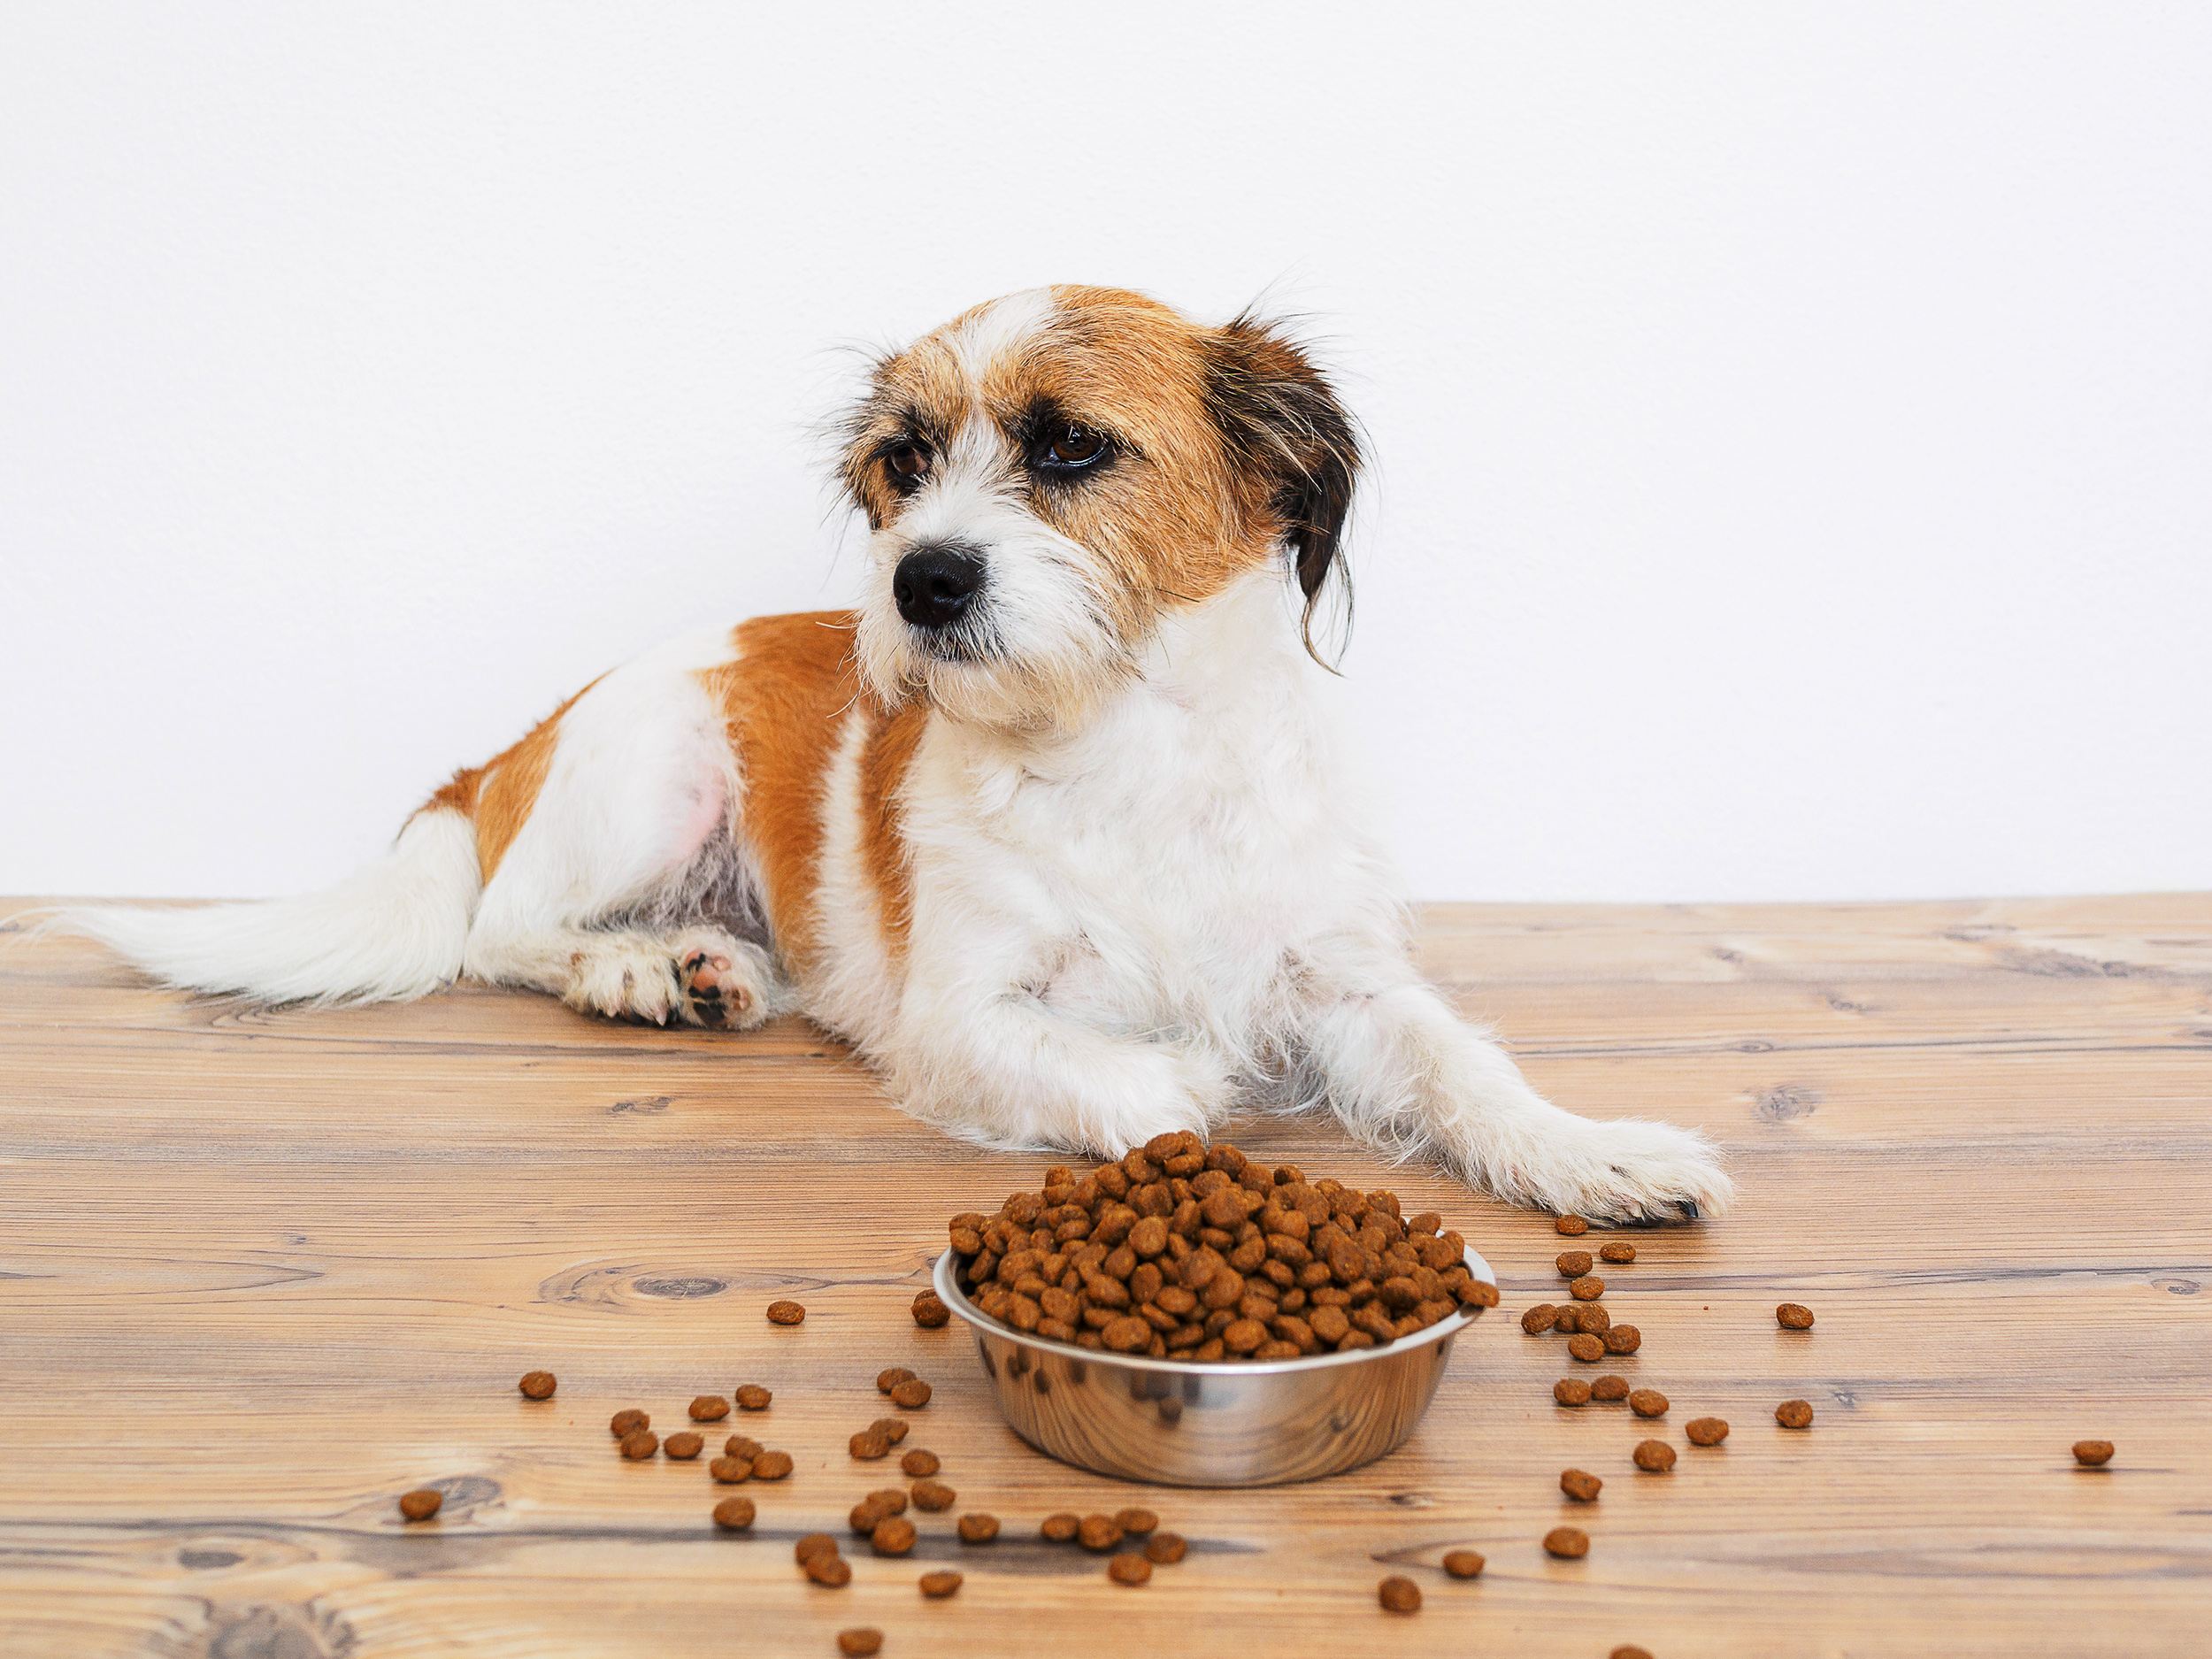 After FDA warning about grain-free pet food, what's safe to